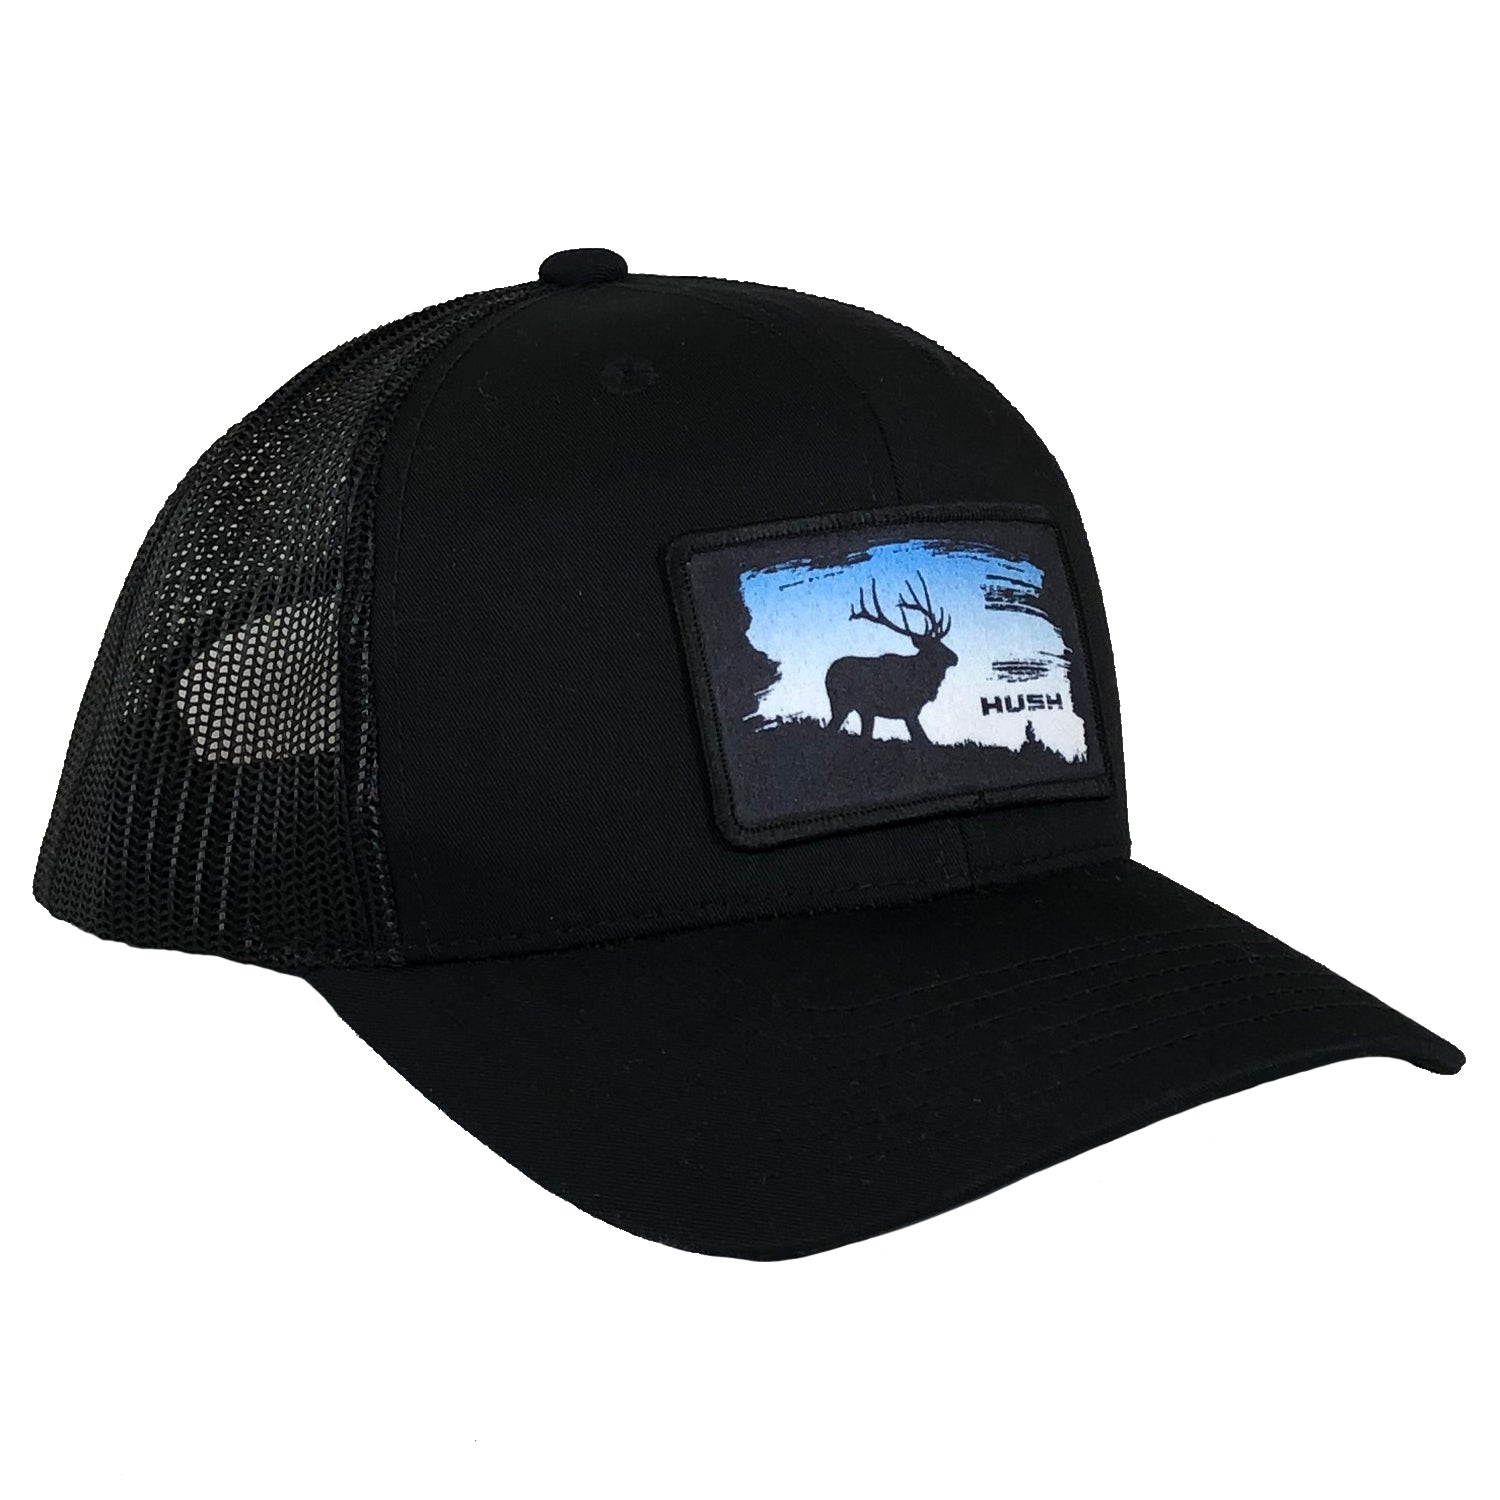 Black straight seven bent brim